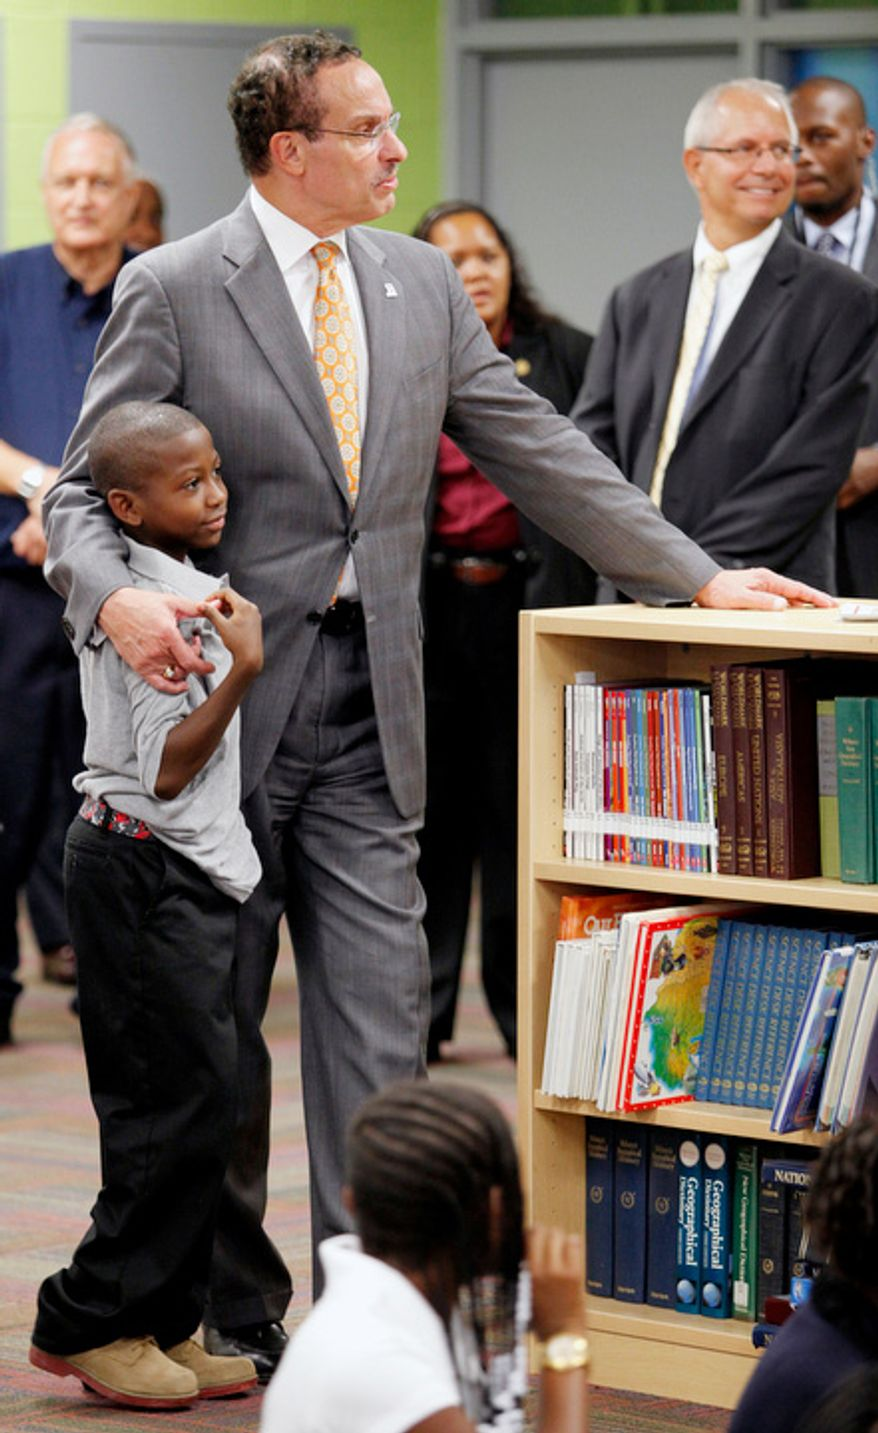 Mayor Vincent C. Gray gets a hug from Phillip Thomas, 9, to kick off his visit to Amidon-Bowen Elementary School in the District.